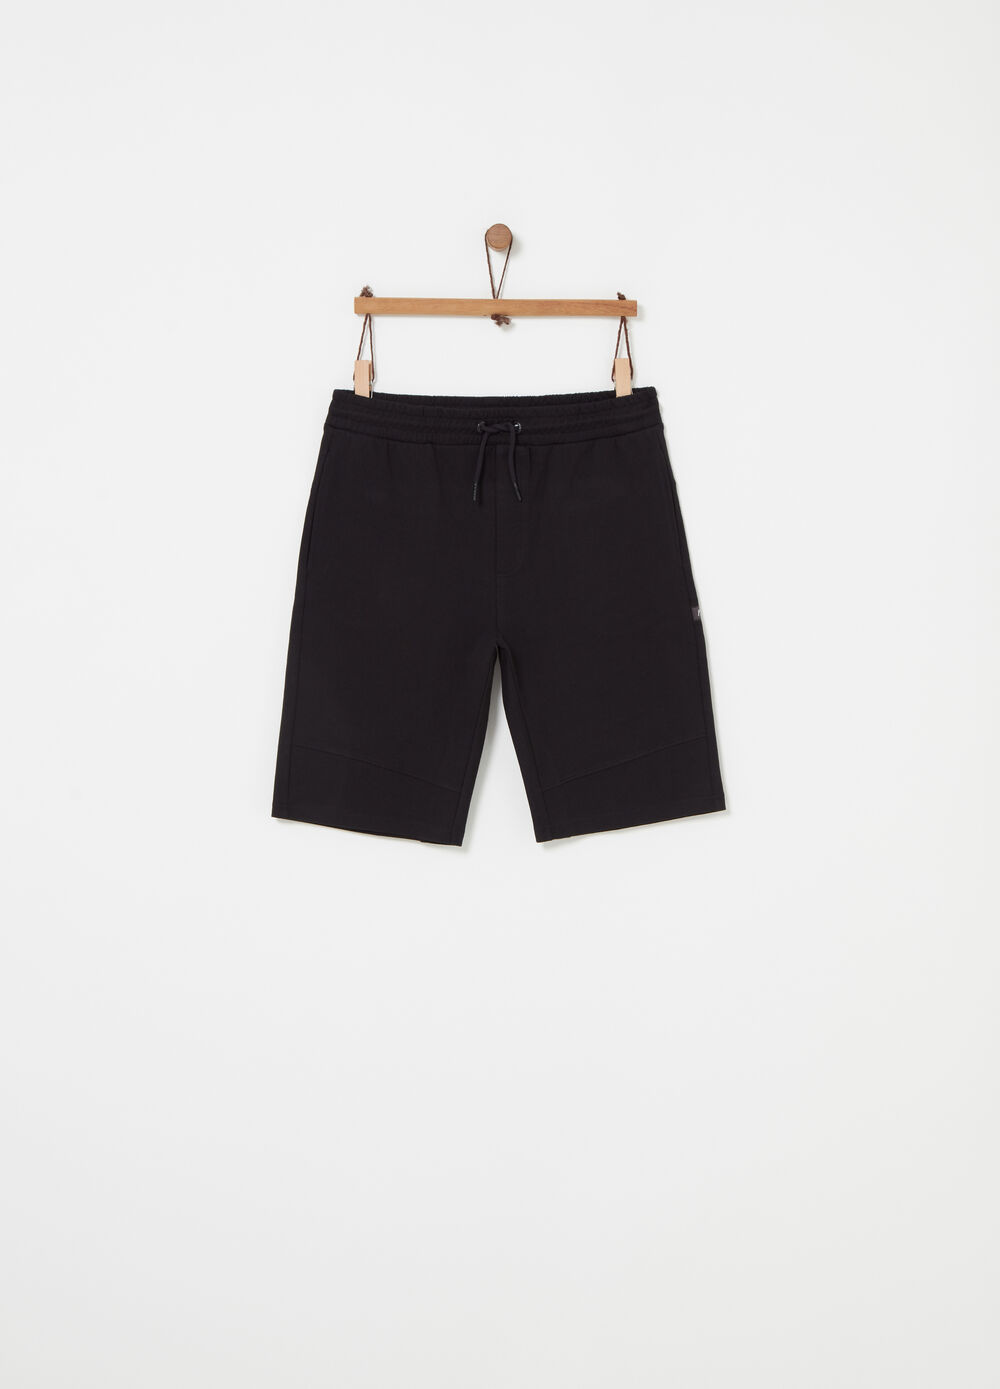 Shorts with elastic waist and pocket with zip